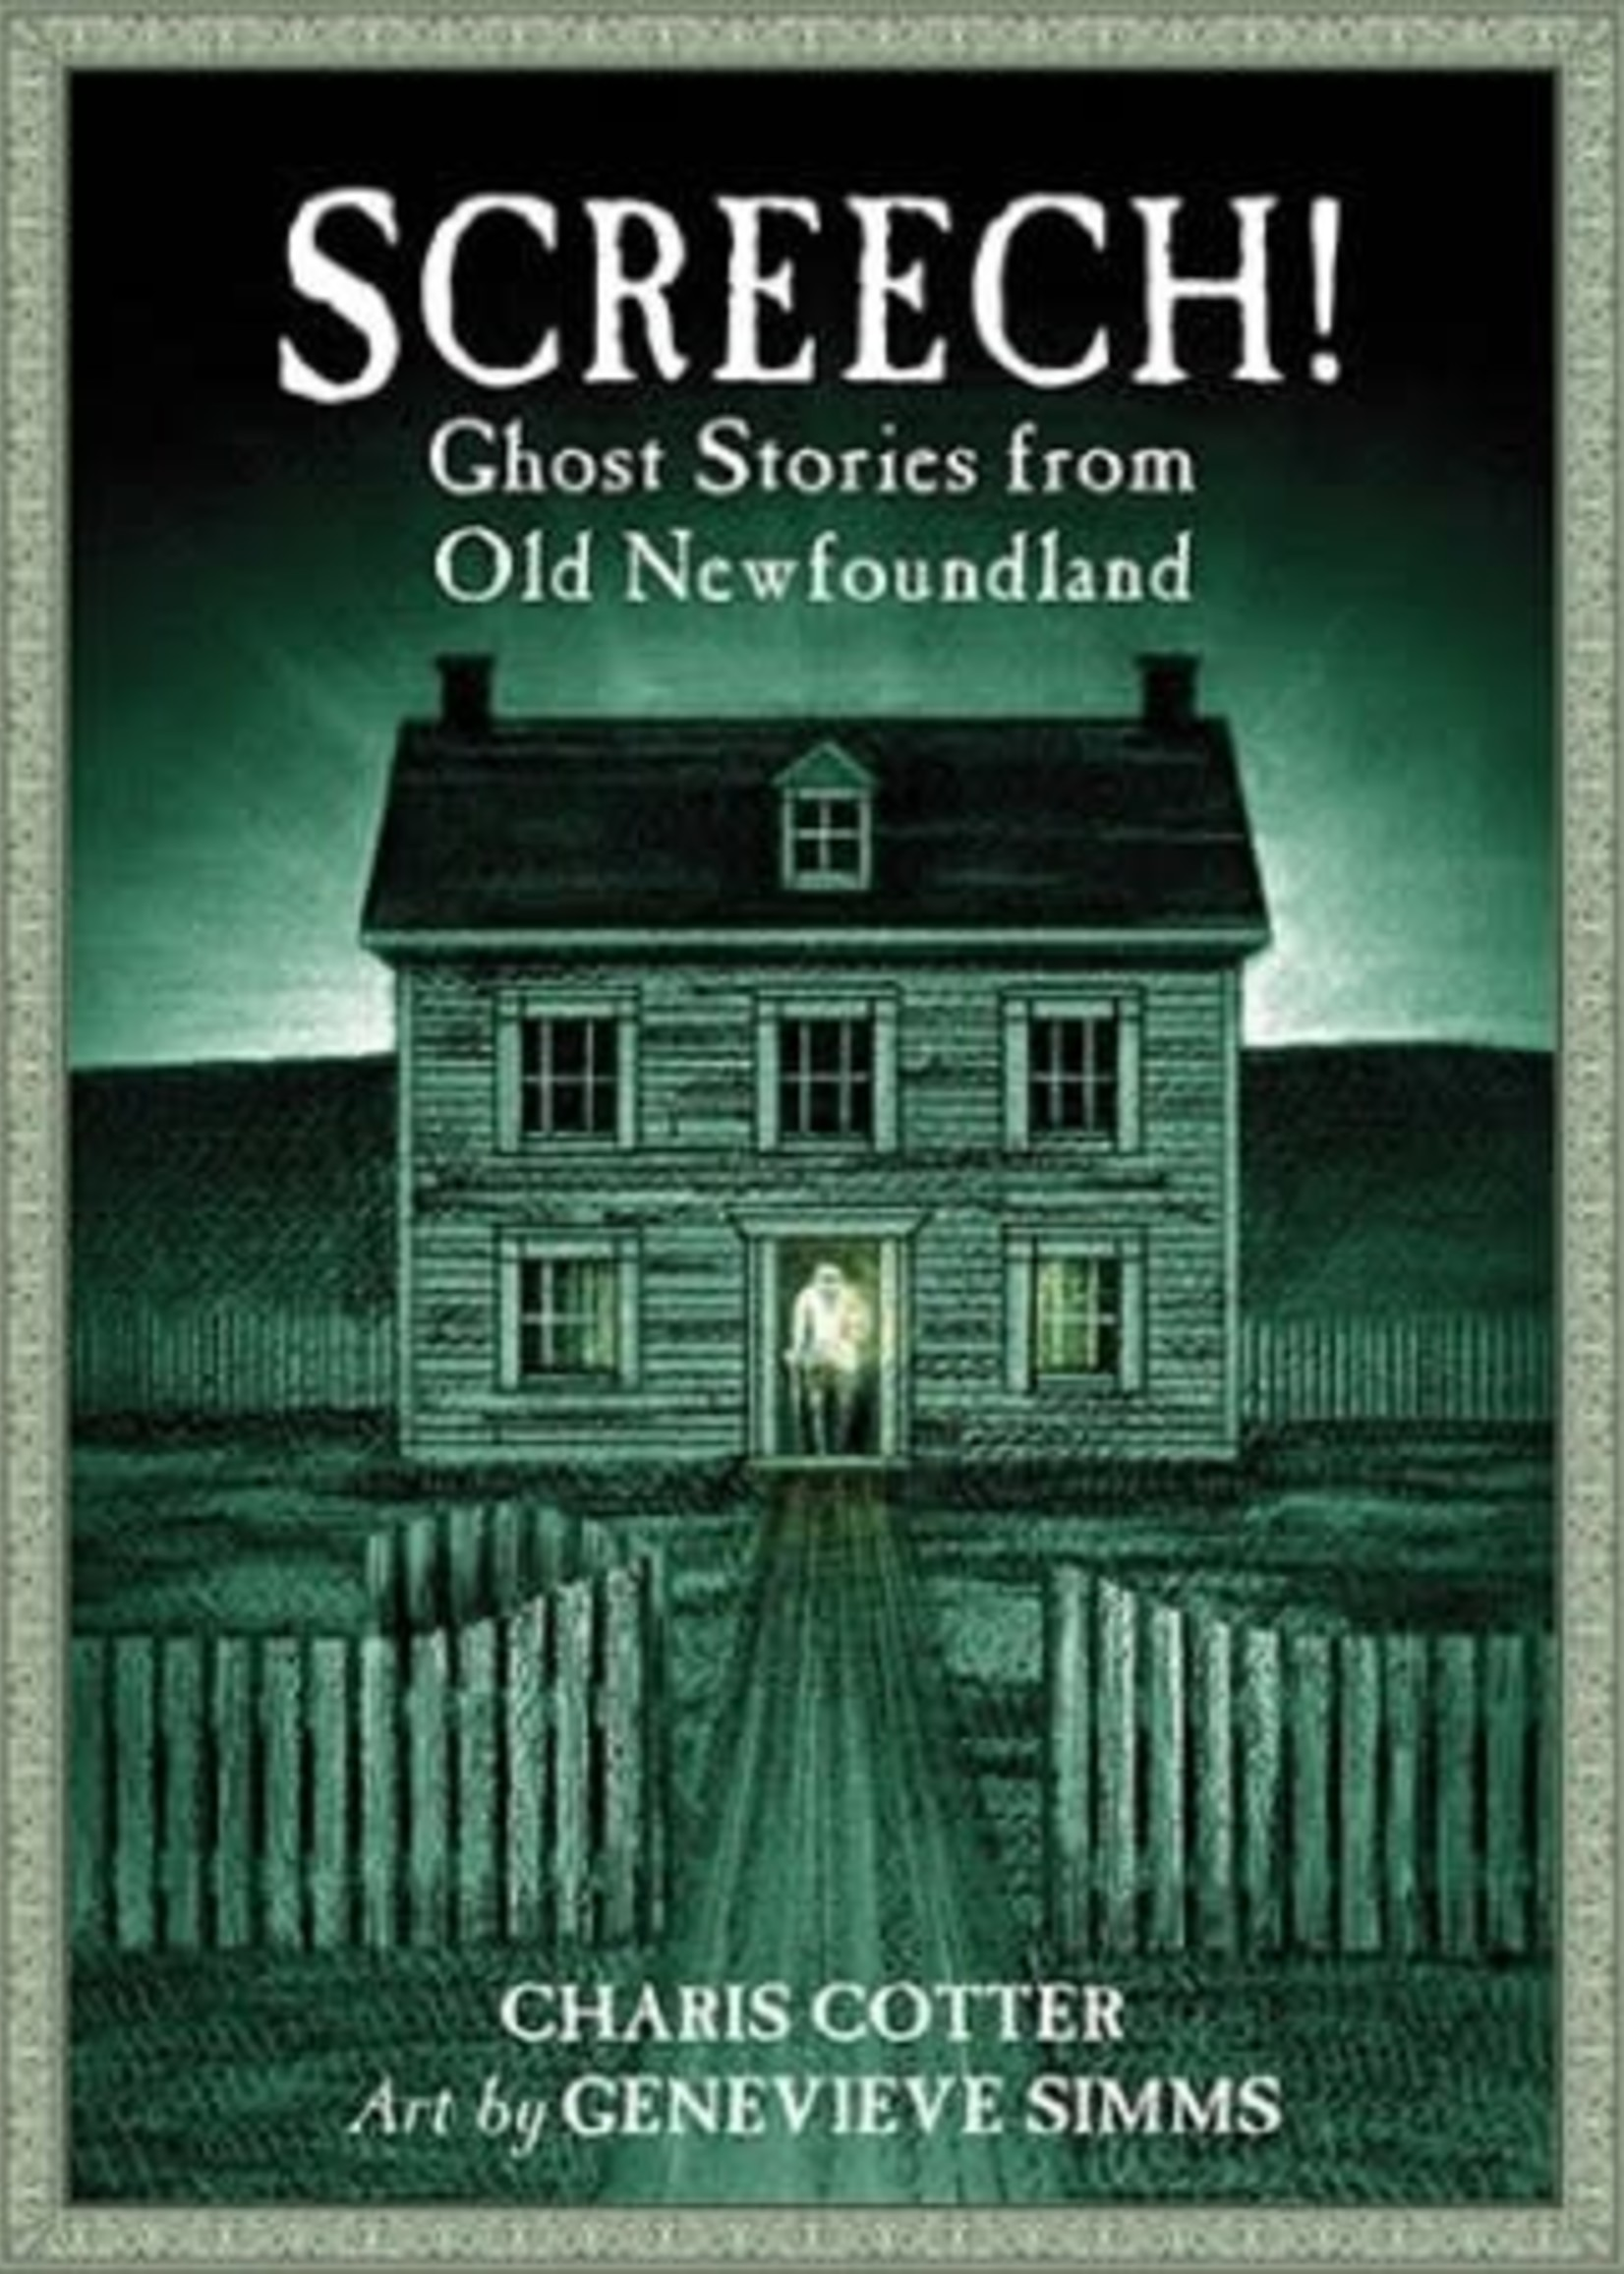 Screech! Ghost Stories from Old Newfoundland by Charis Cotter